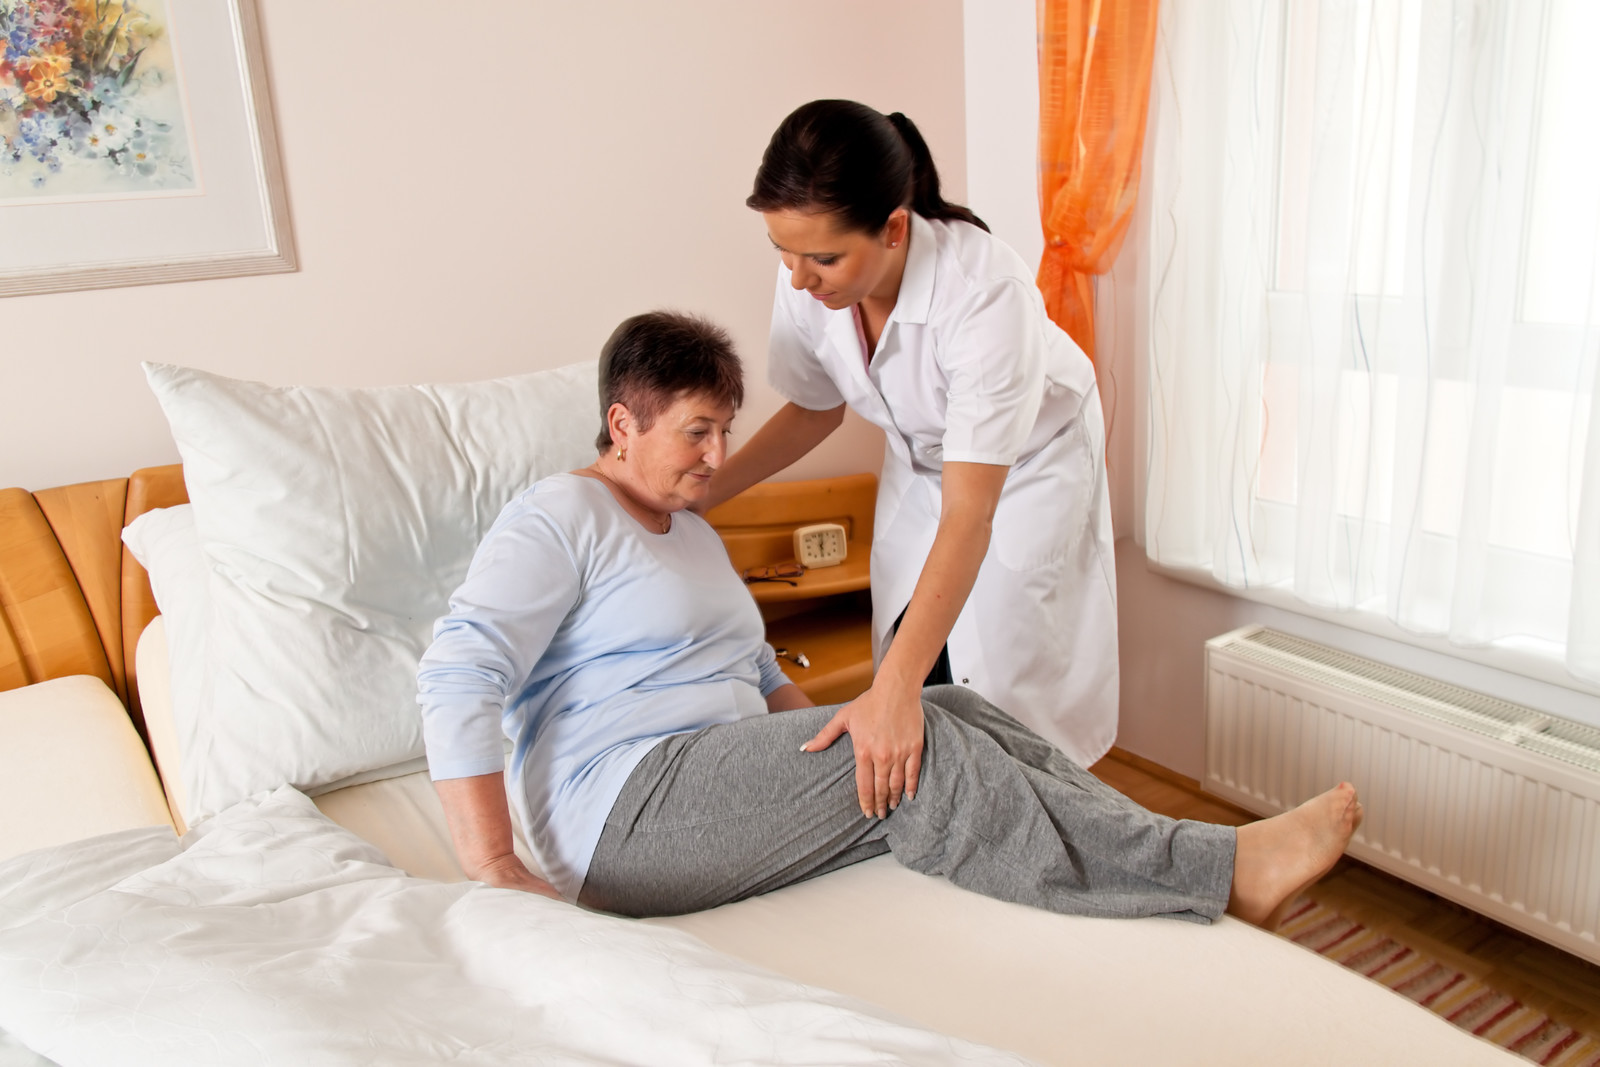 Senior woman being helped into bed by a nurse